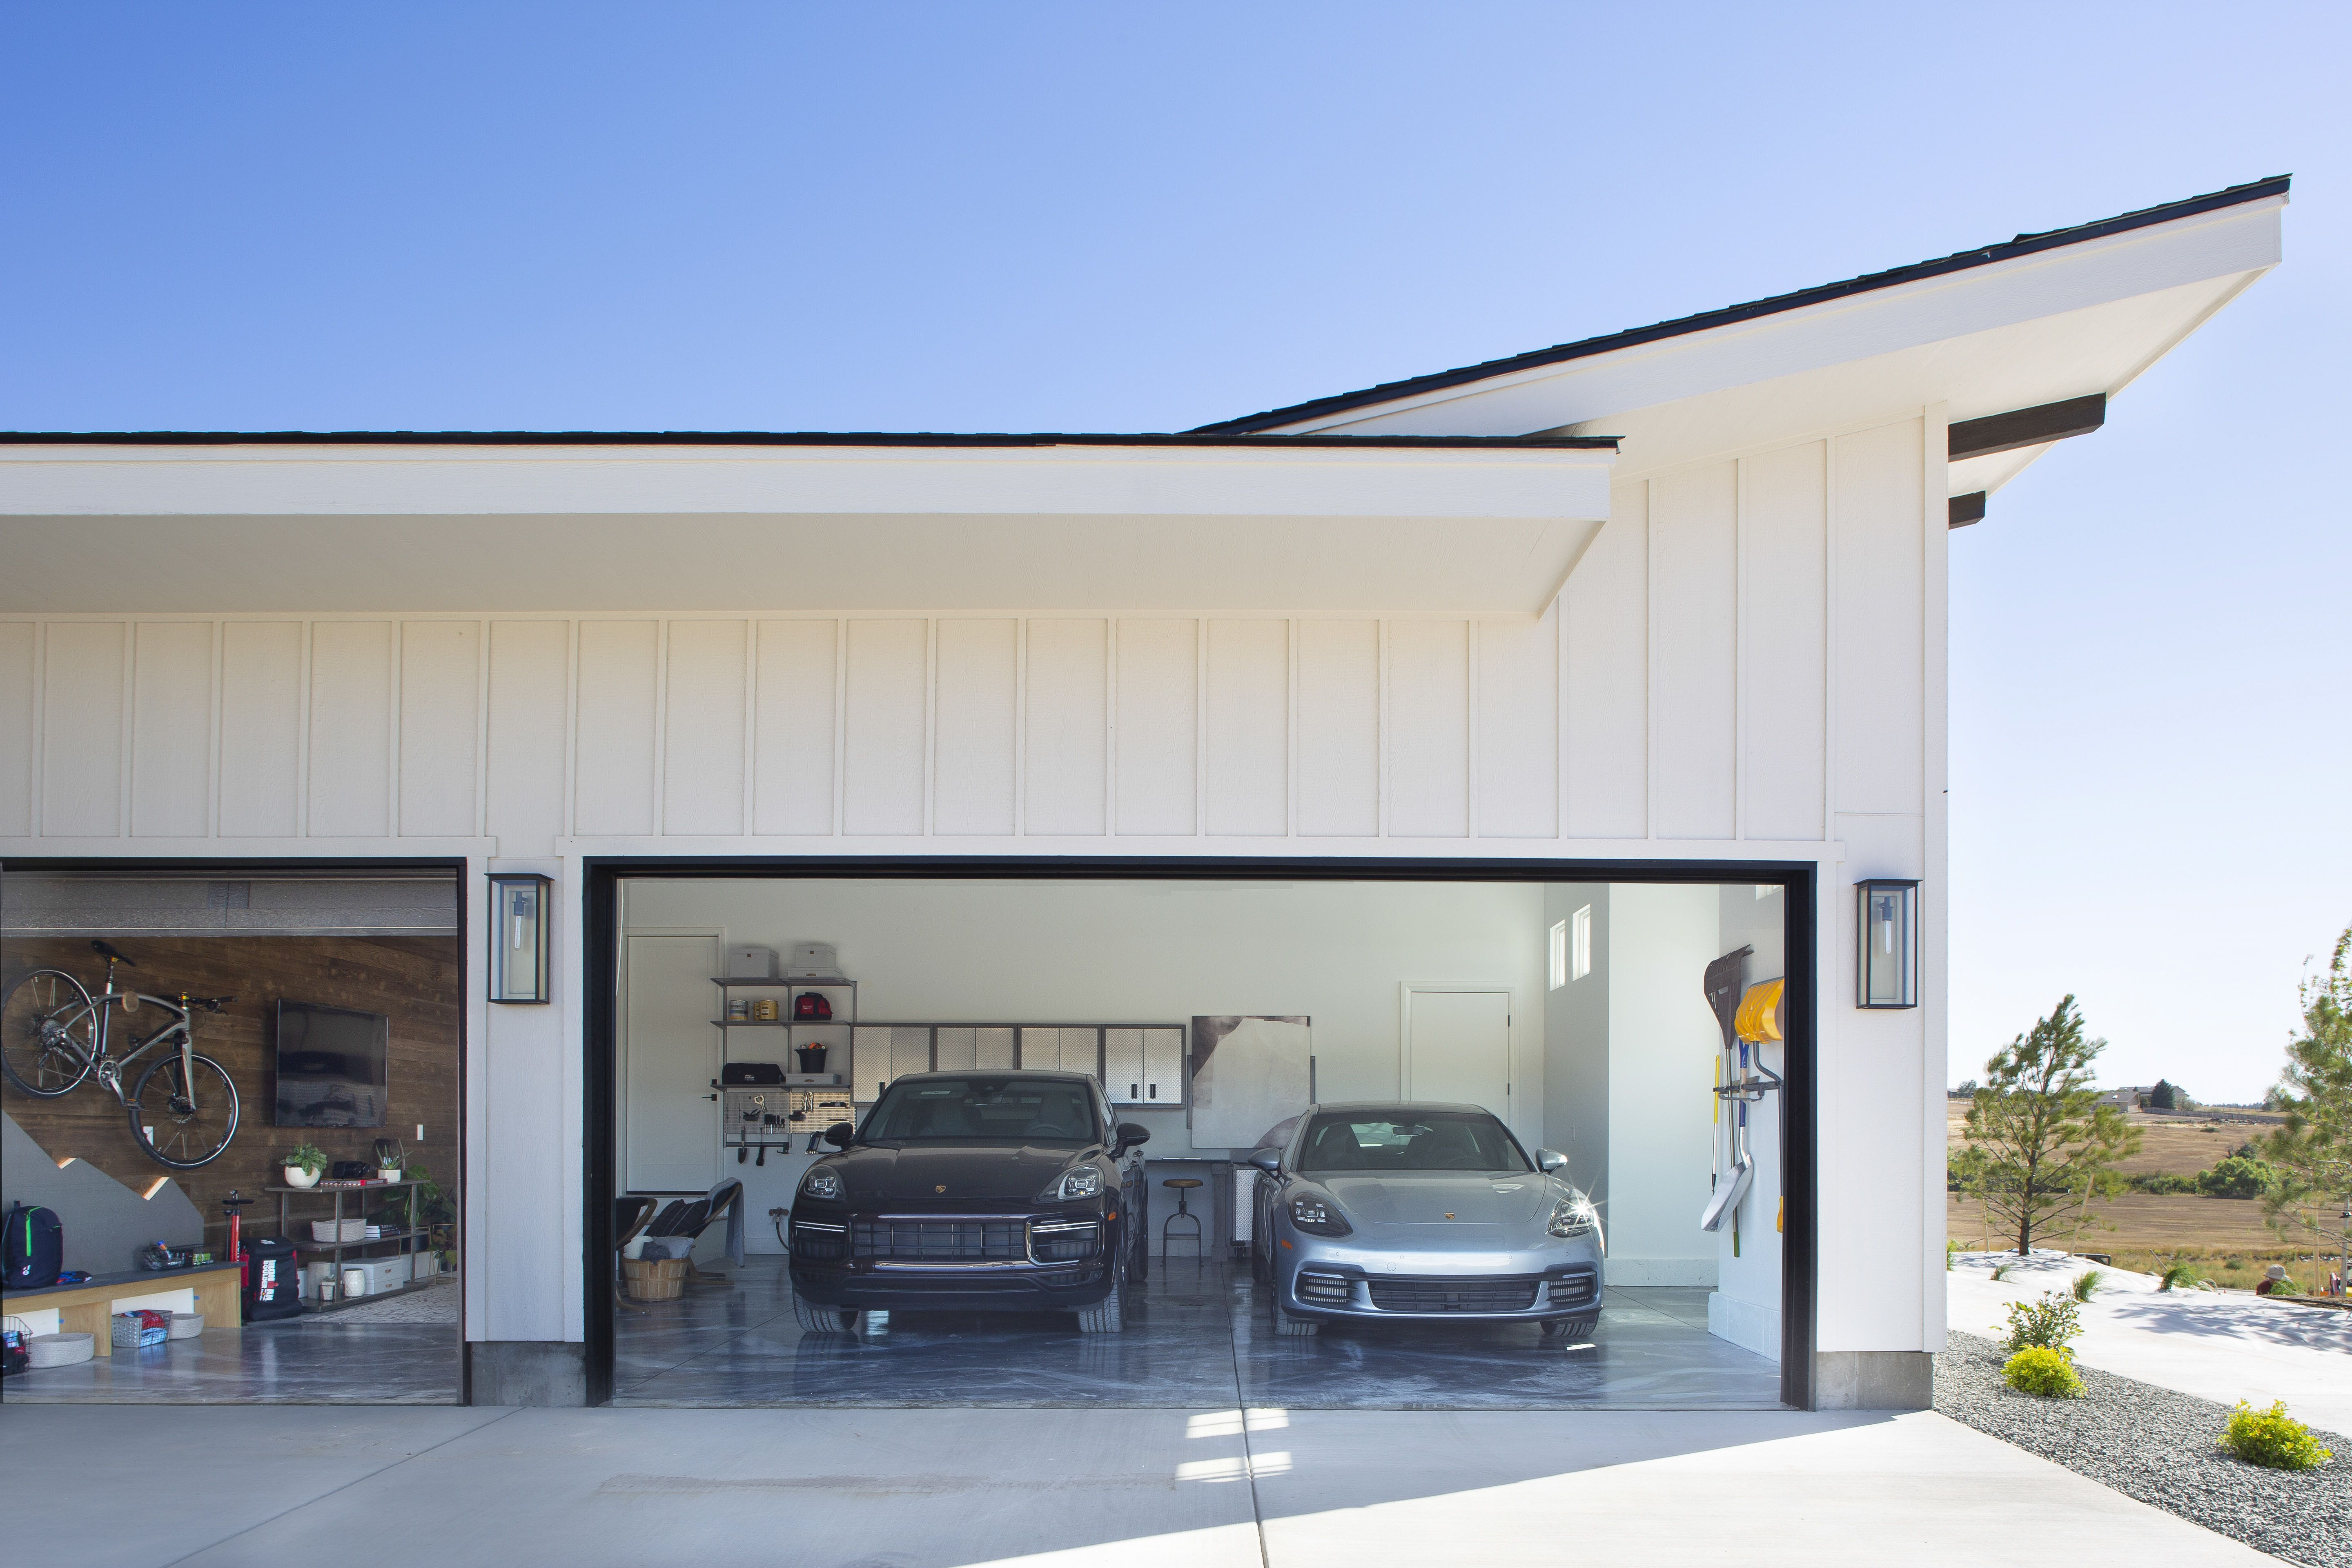 This Garage Is the Ultimate Display of Design and Utility